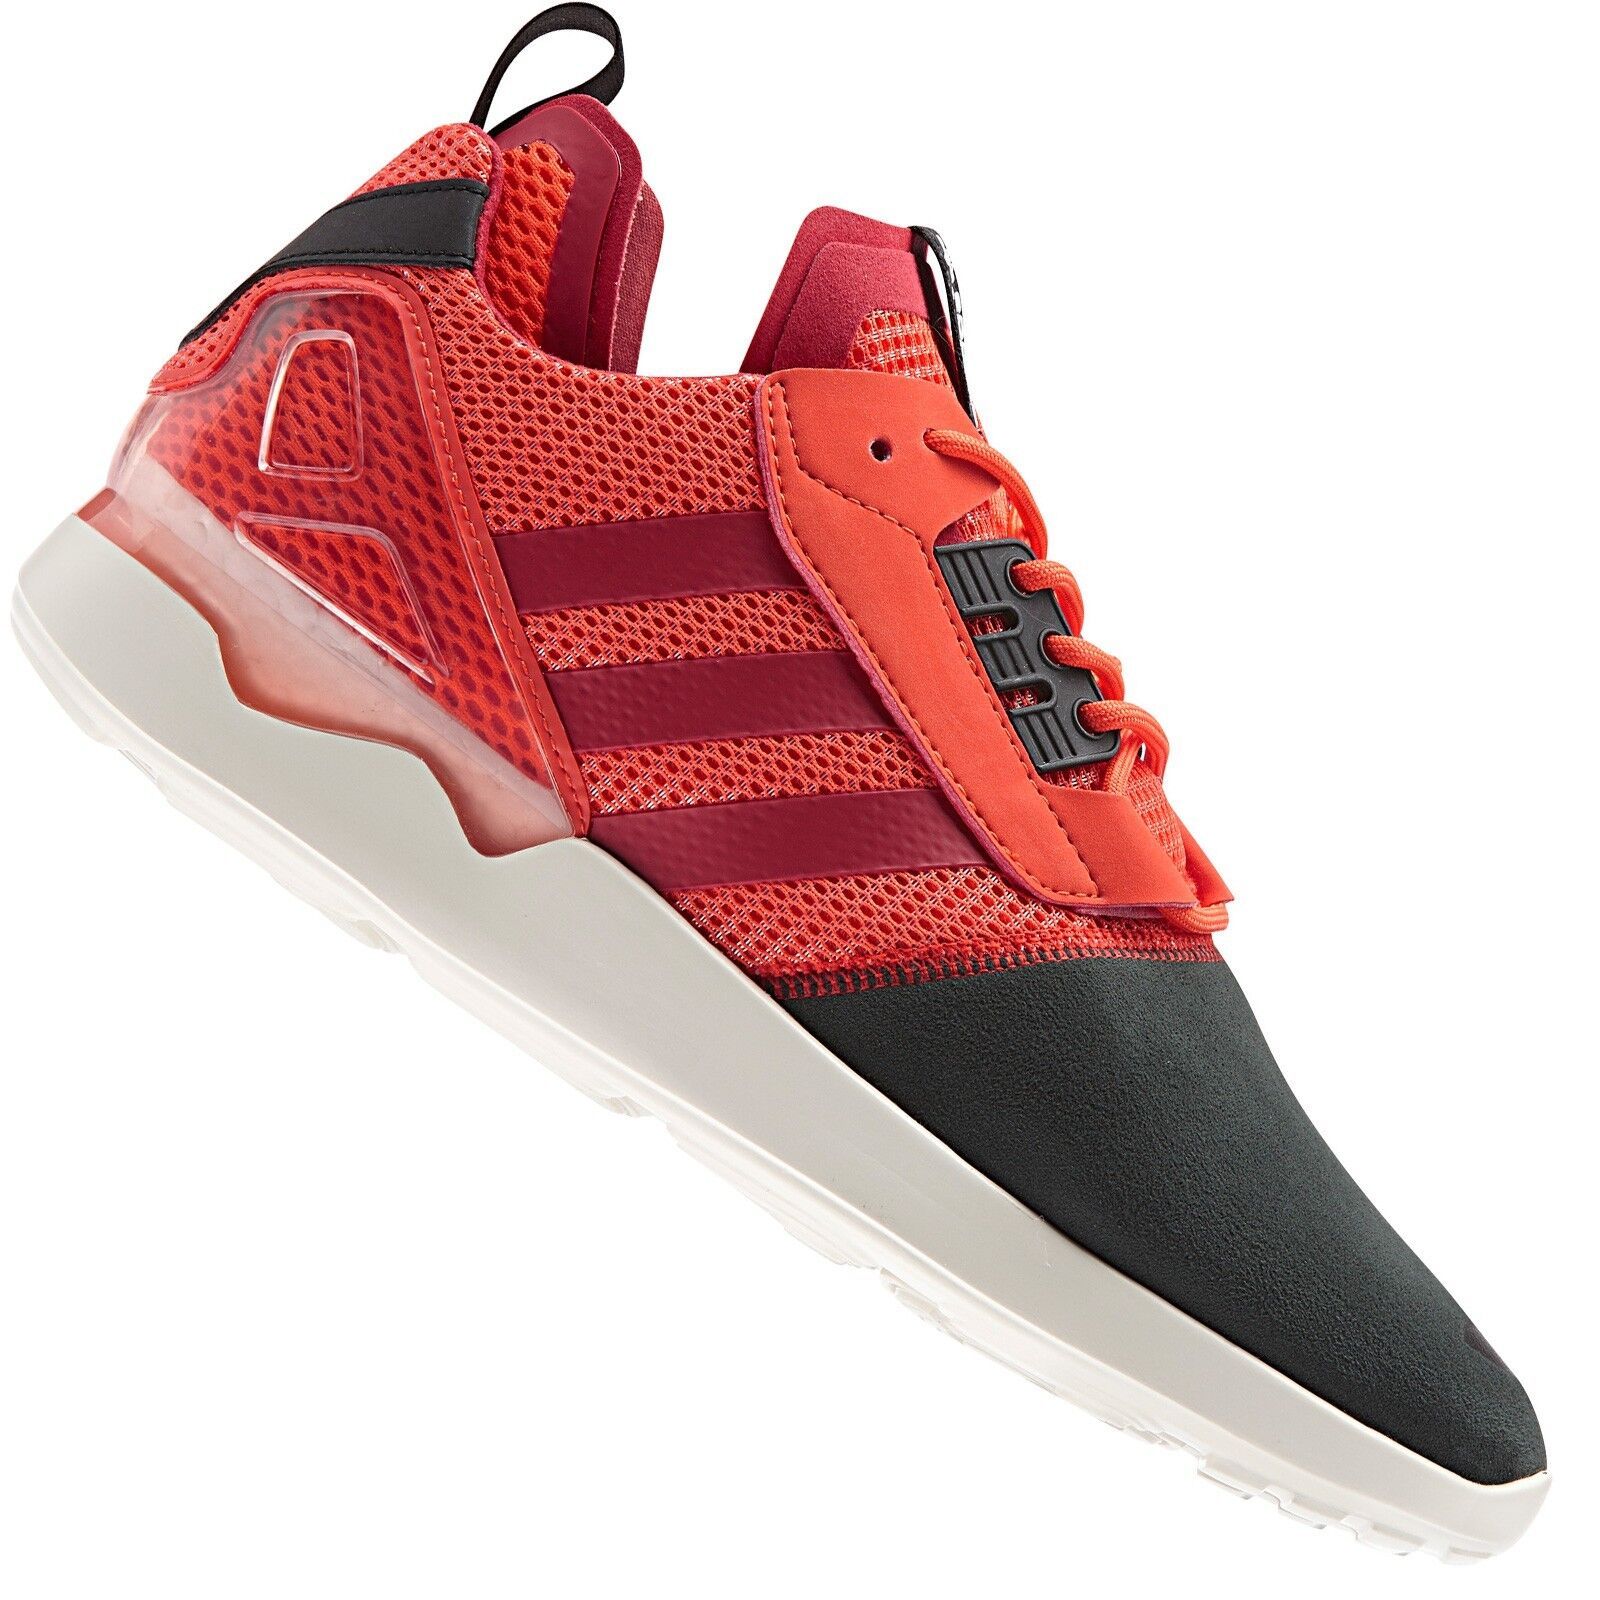 low priced b380f 34ac7 купить ADIDAS 8000 MITA G97747, с доставкой ADIDAS ORIGINALS ZX 8000 Boost  Running Shoes Jogging